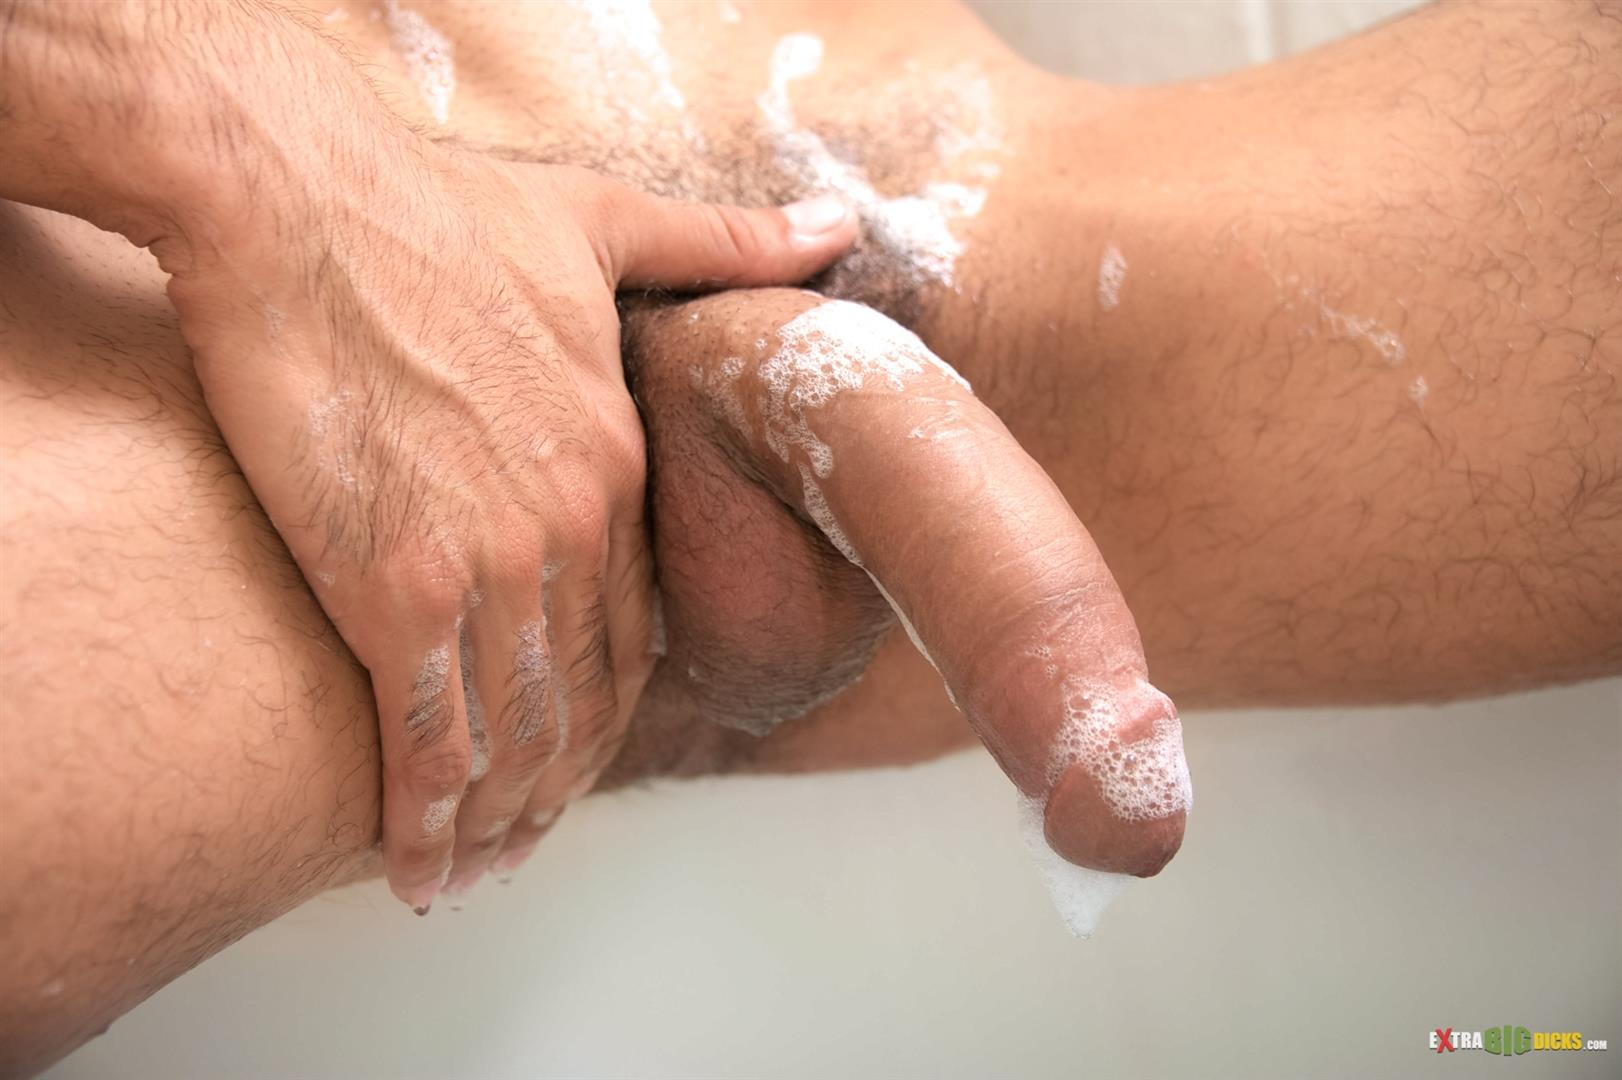 Big dick in bathtub movieture gay the now